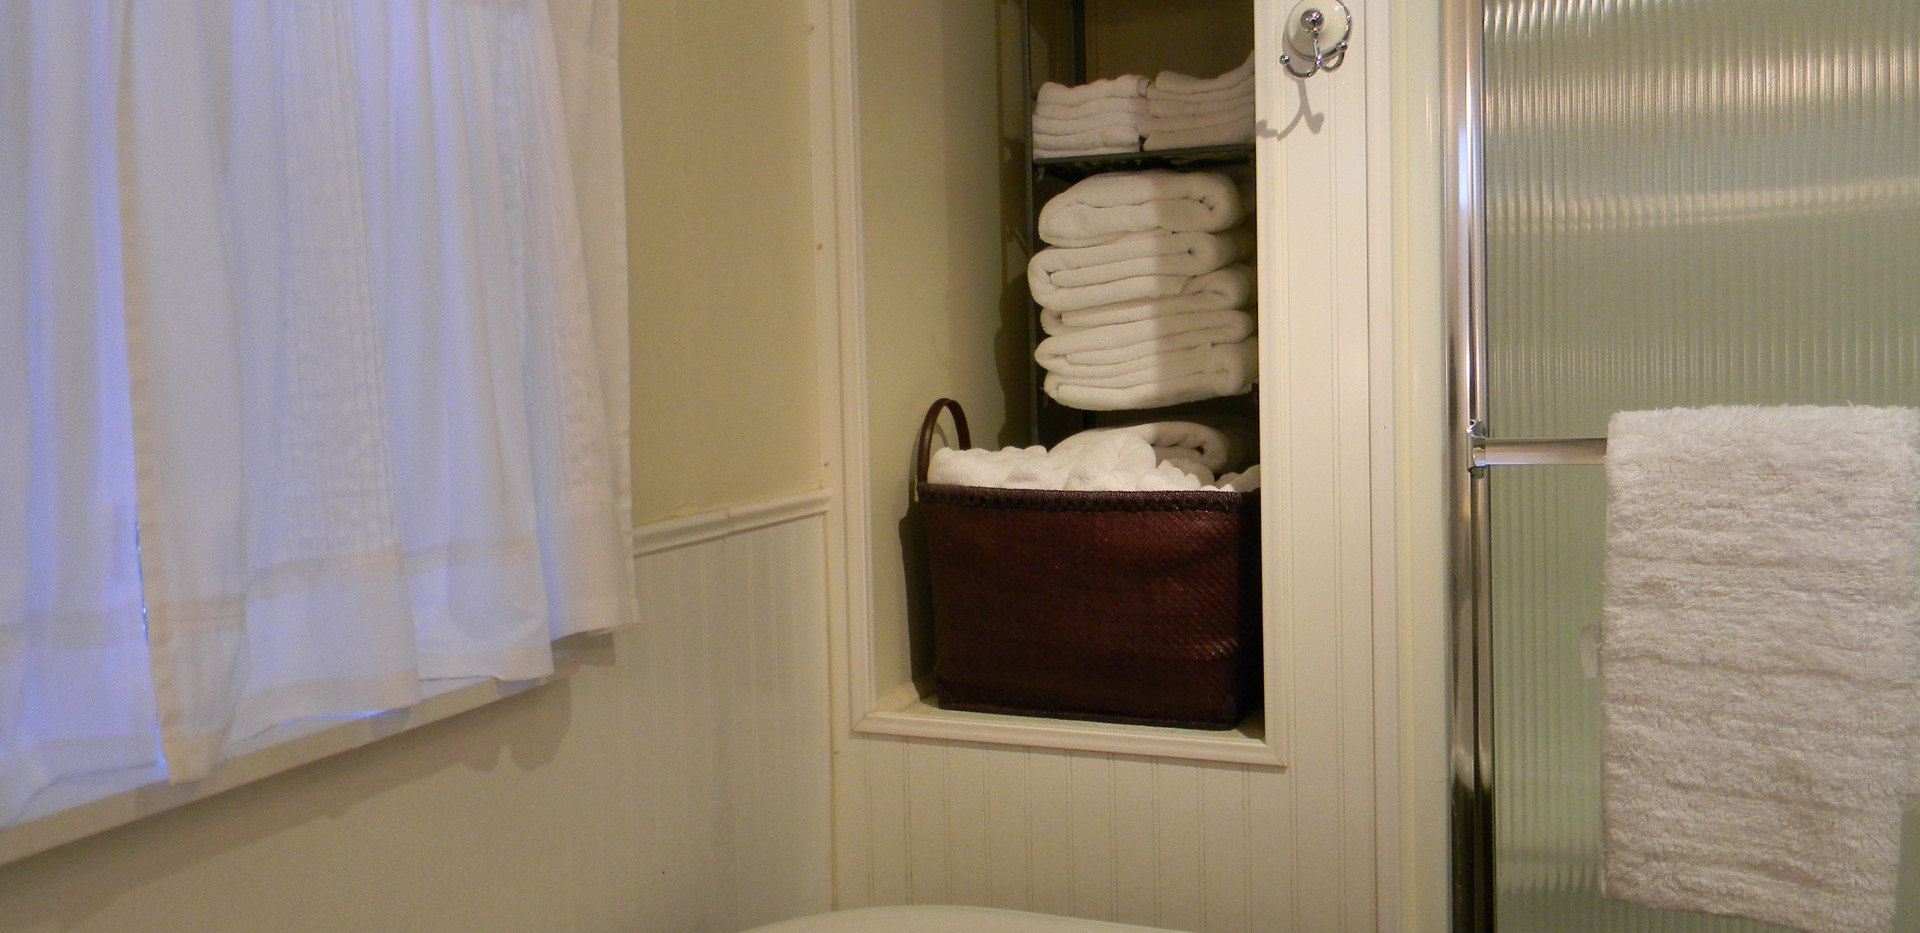 Stocked with Towels